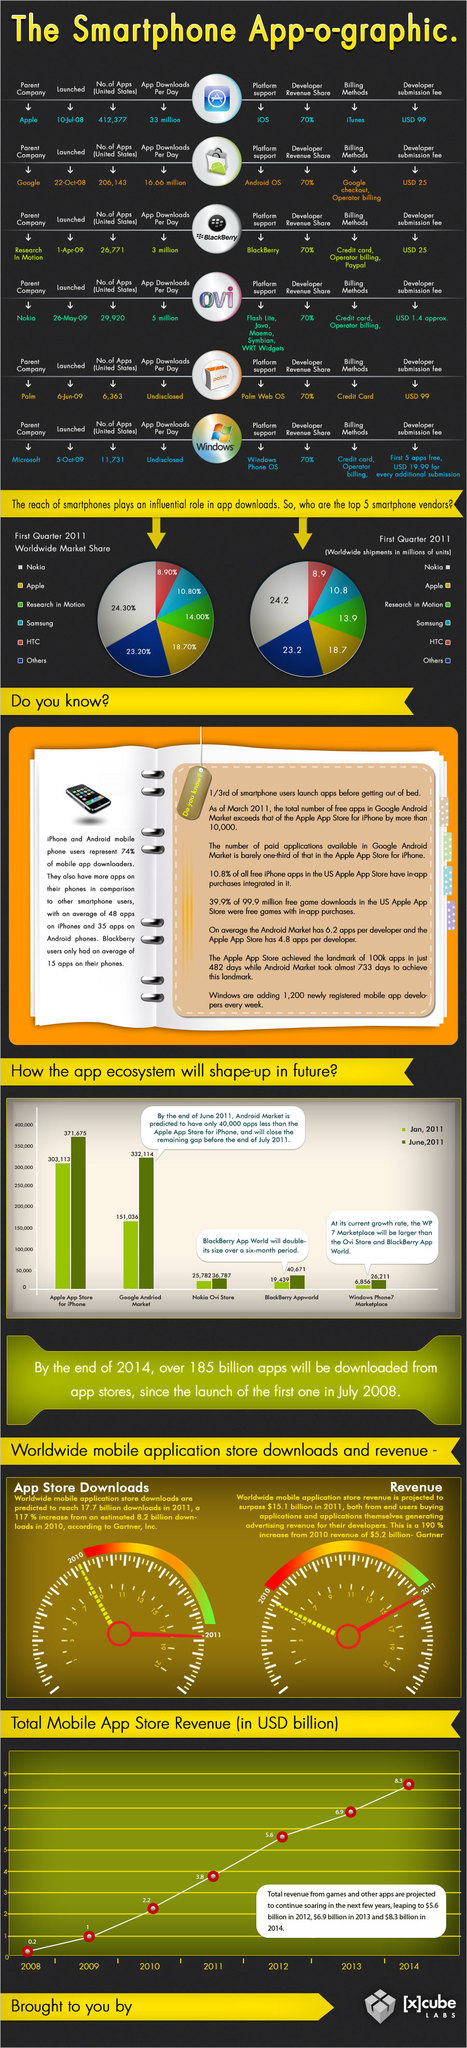 The SmartPhone App-o-graphic | Infographics | Scoop.it